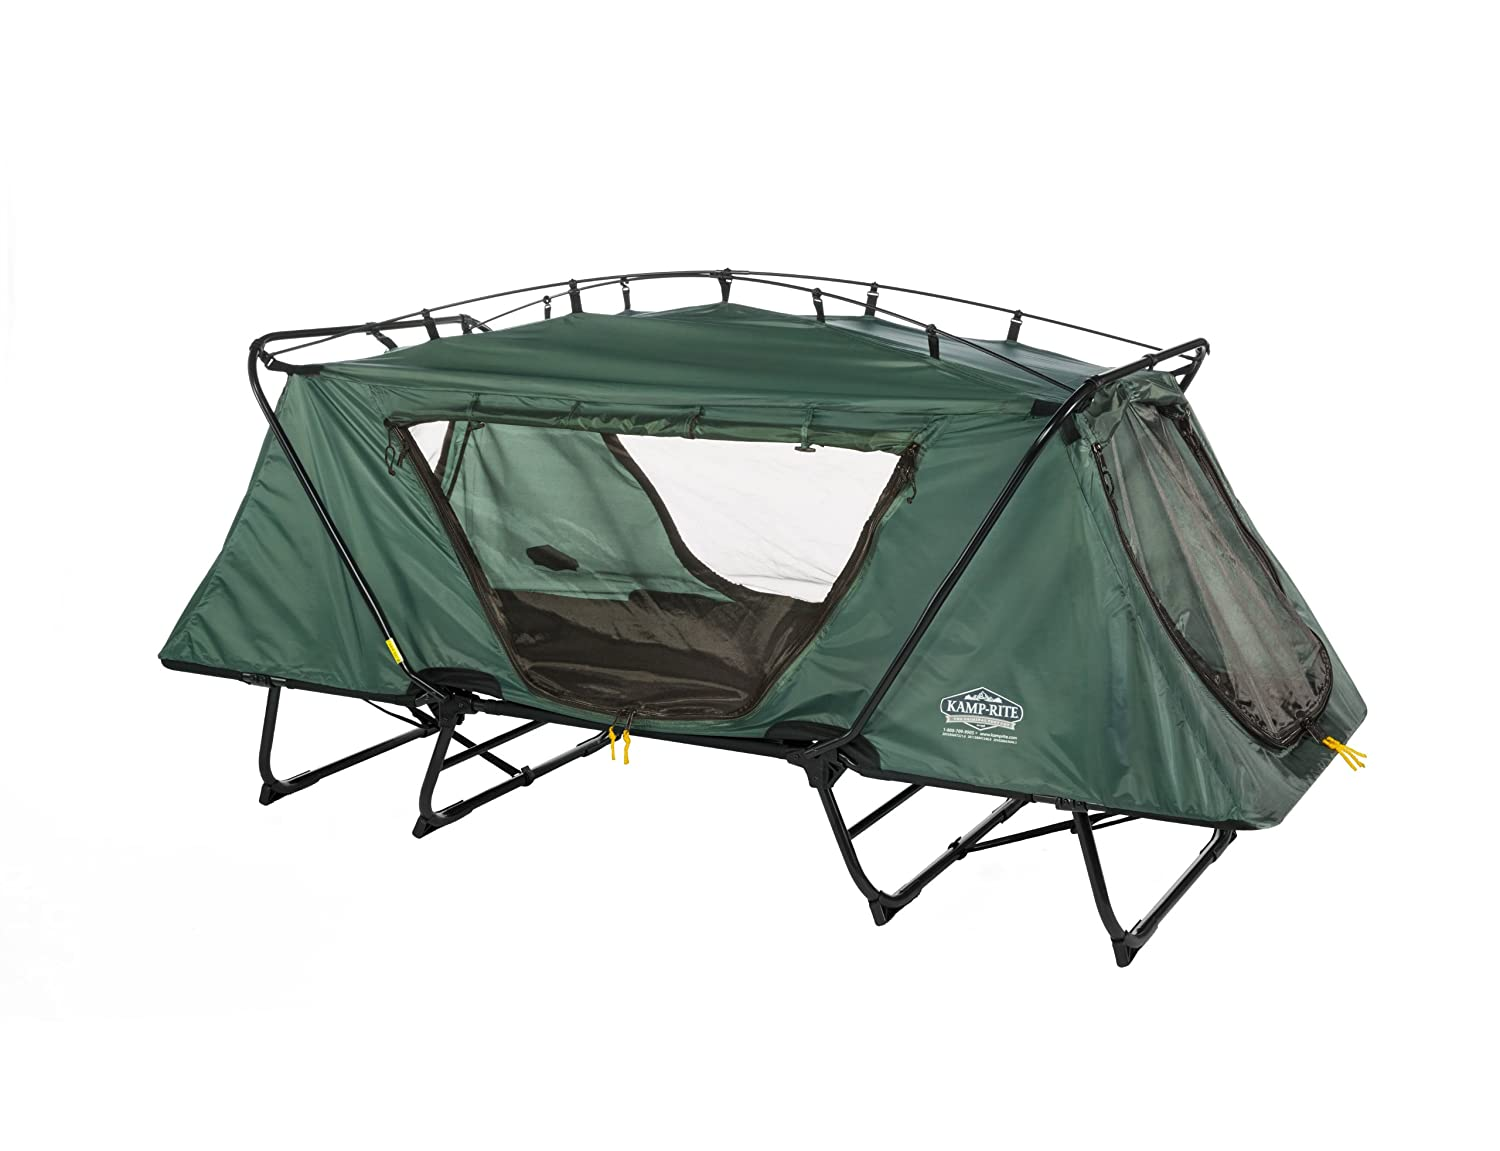 Camping Beds For Tents >> Oversize Tent Travel Cot Camping Gear Hiking Outdoor